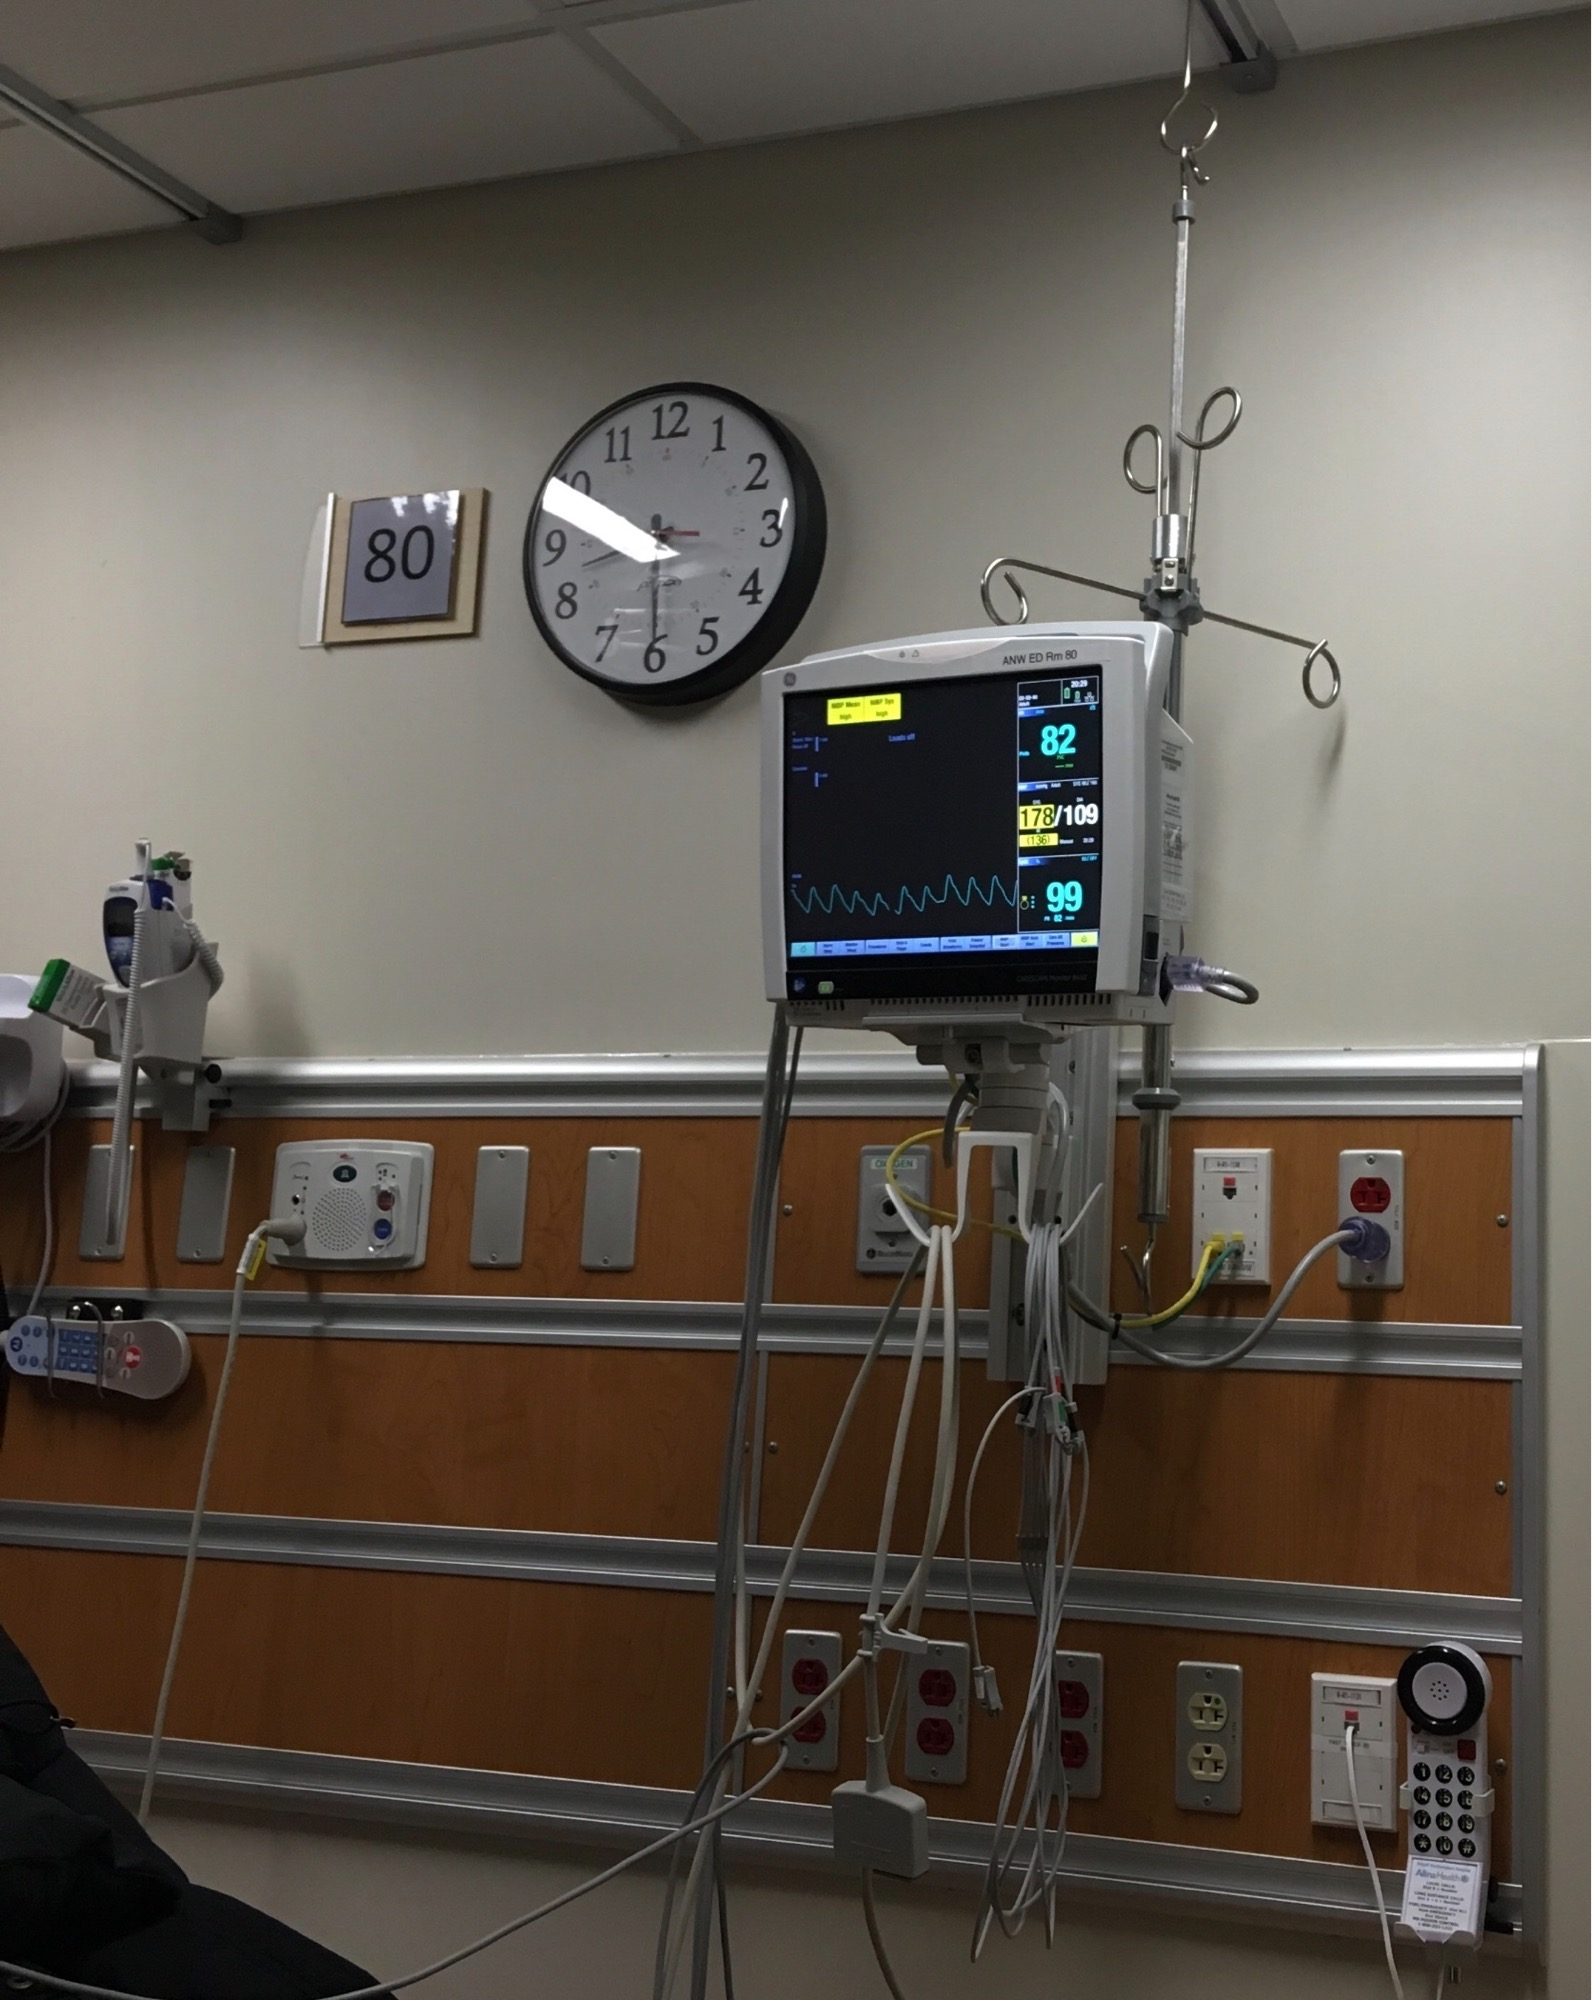 ER triage room with lots of cables and wires, and an extremely high blood-pressure reading on the vitals display